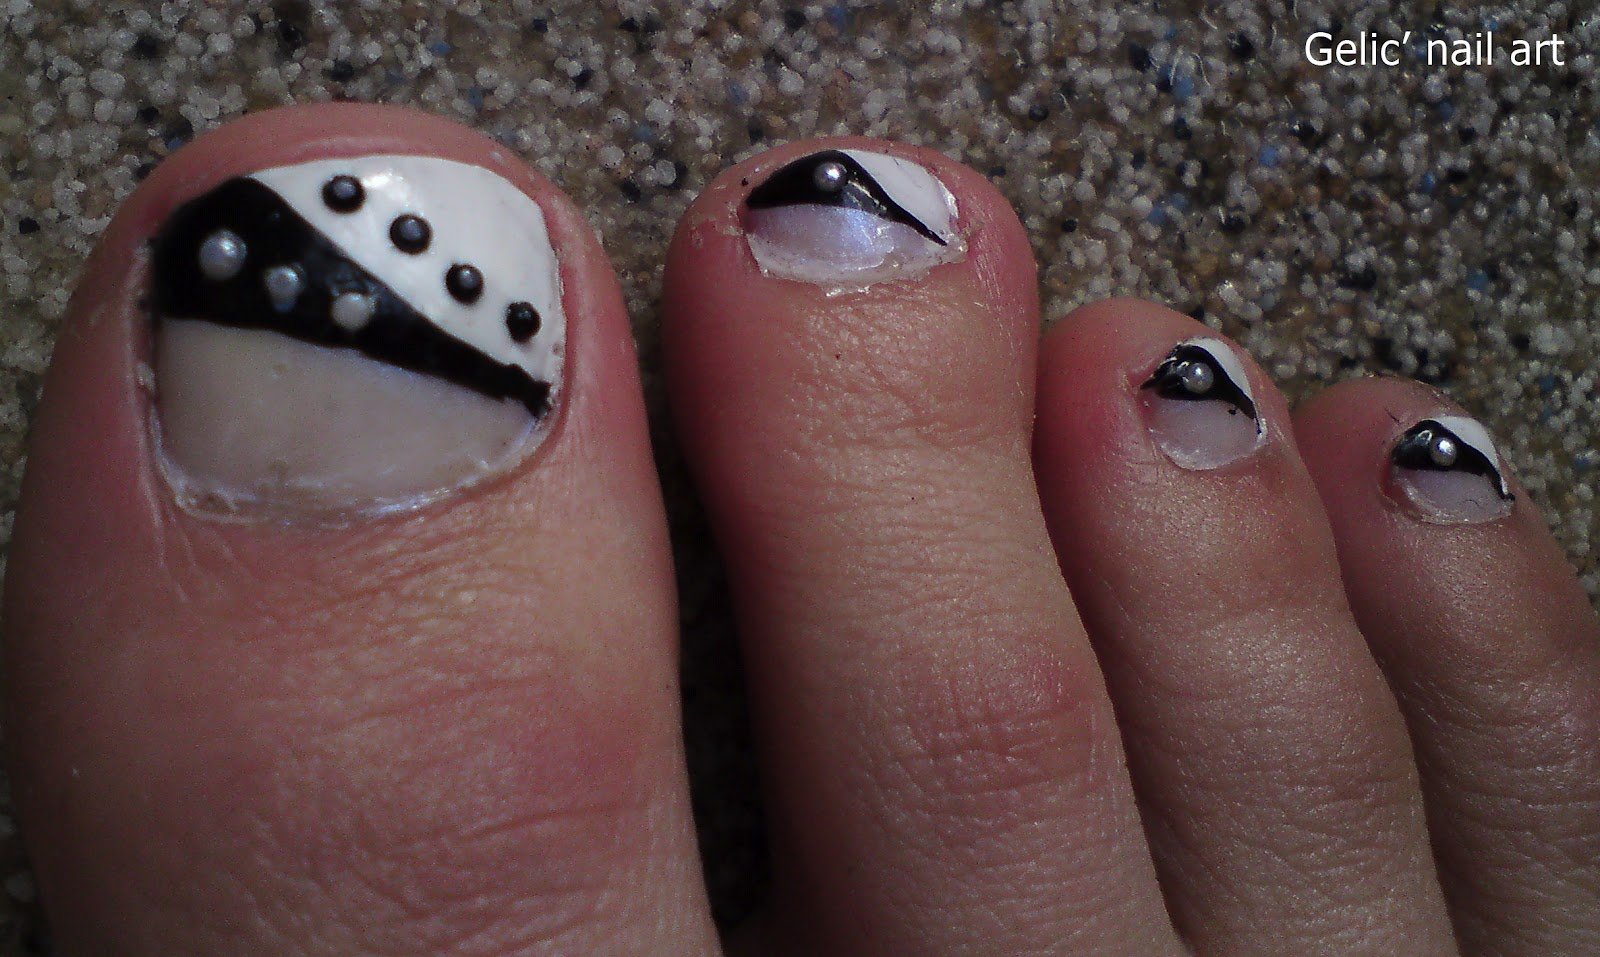 Gelic Nail Art Black And White Pedicure Nail Art With Pearl